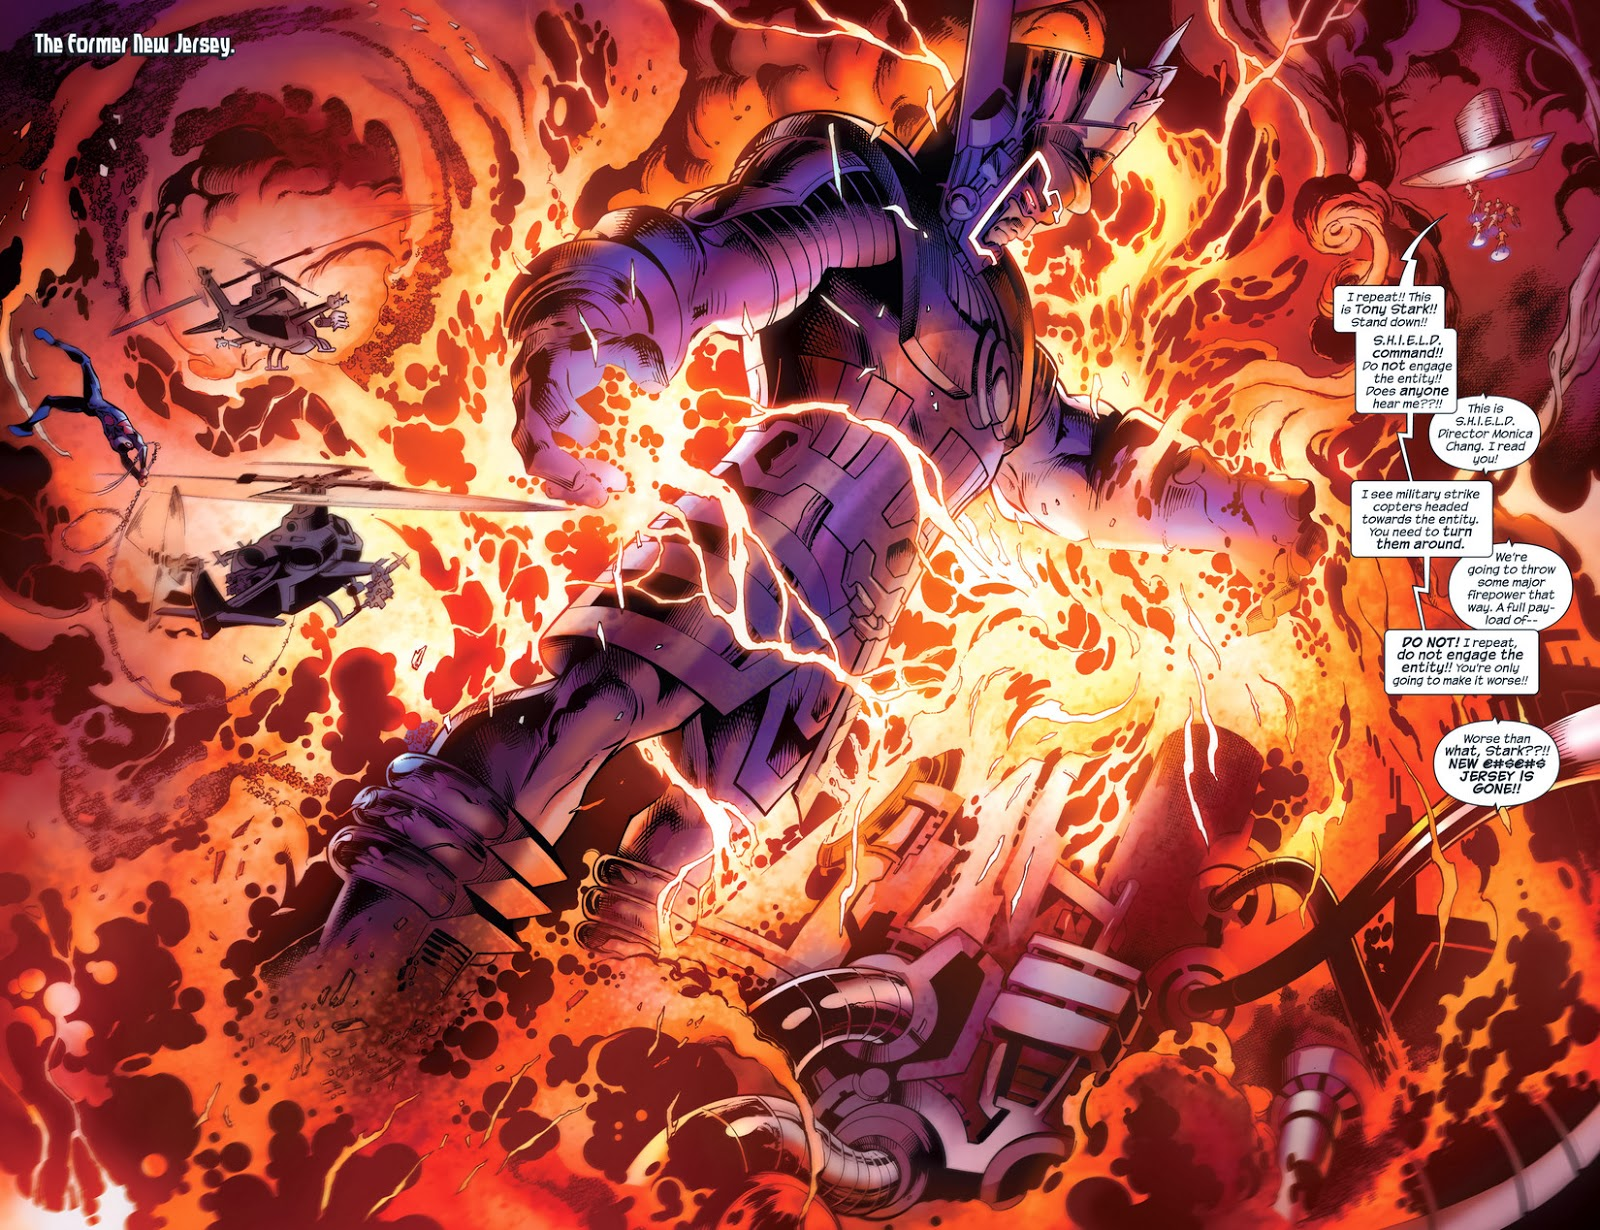 Galactus continues to ...